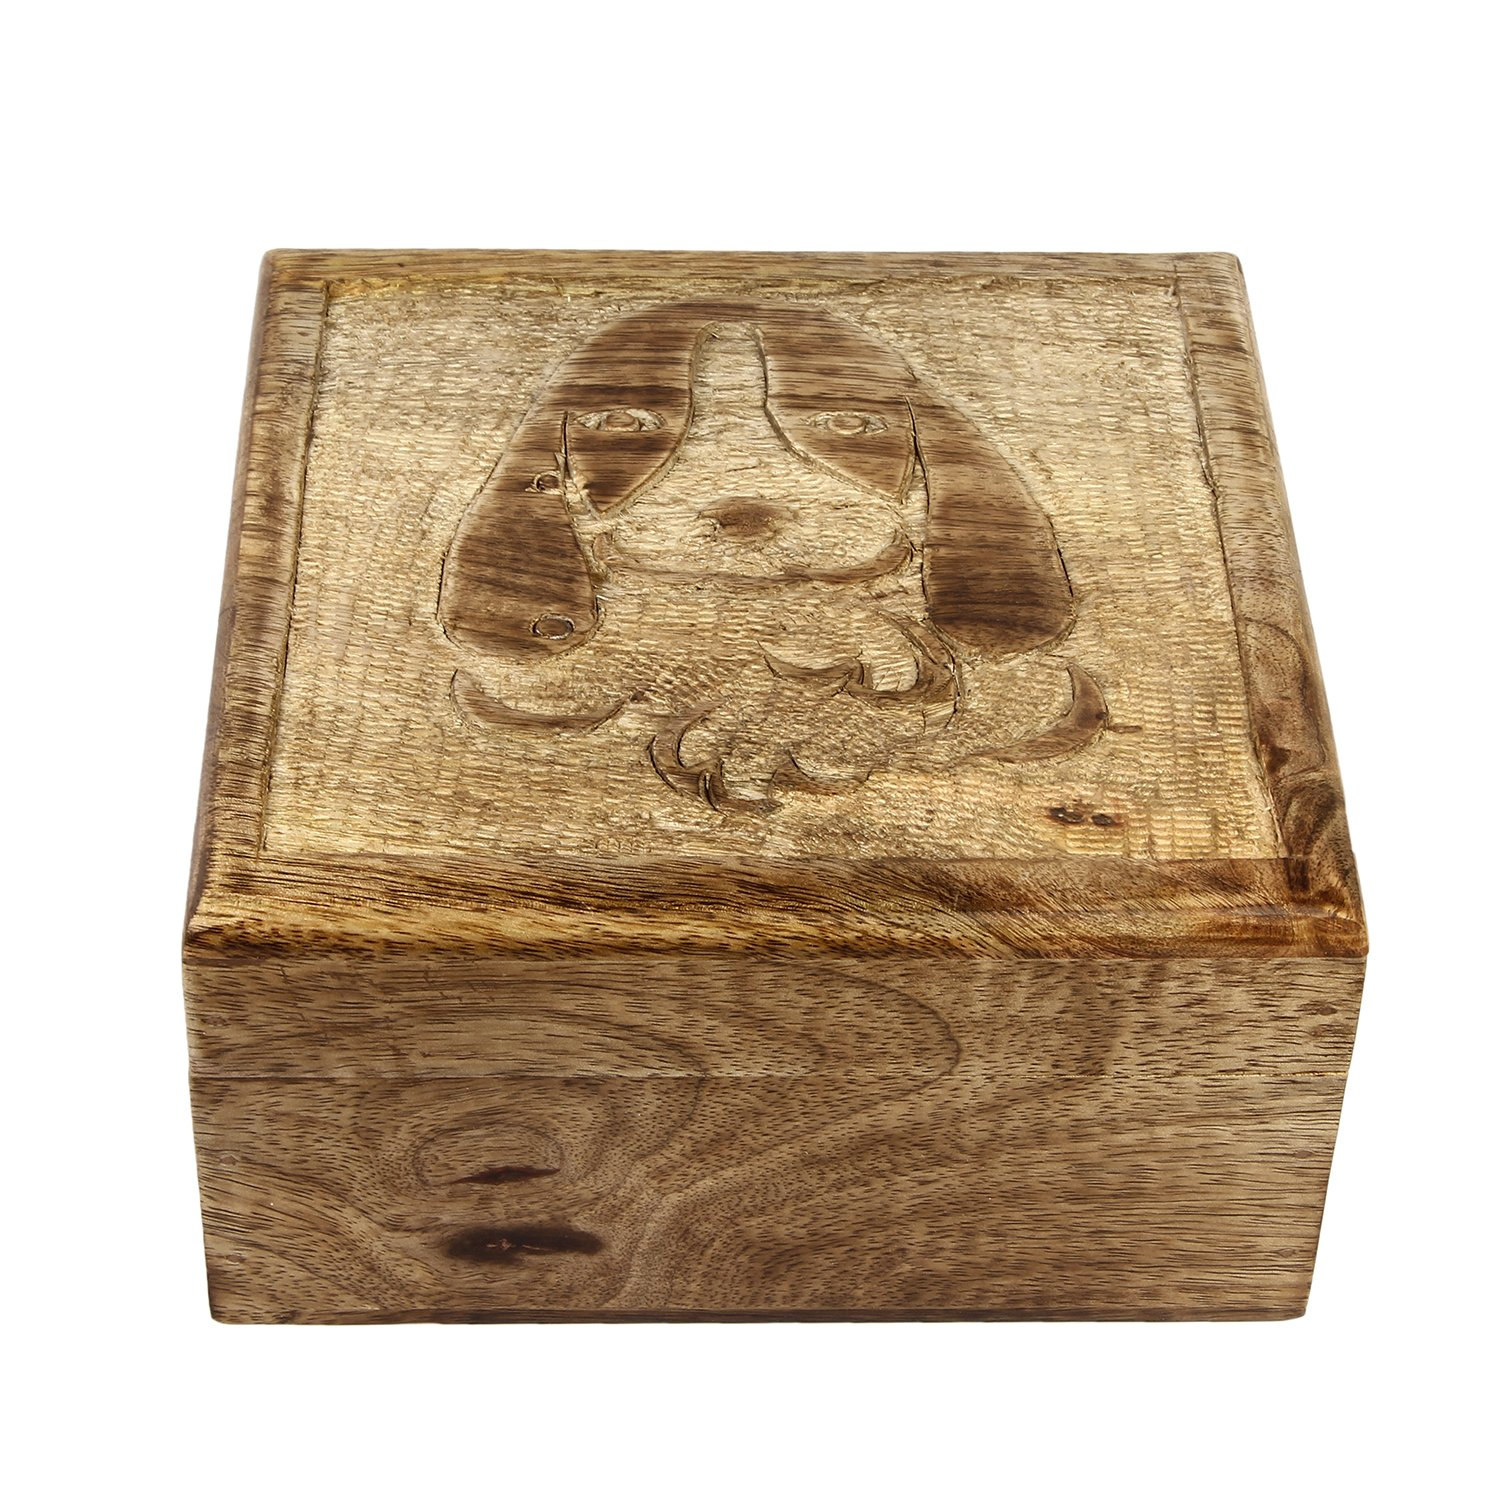 7 x 4 Inches LT-ANBOX-11 Aheli Icrafts India Wooden Storage Box for Kids Puppy Designed Multi-Utility Keepsake Square Box Children Room Decor